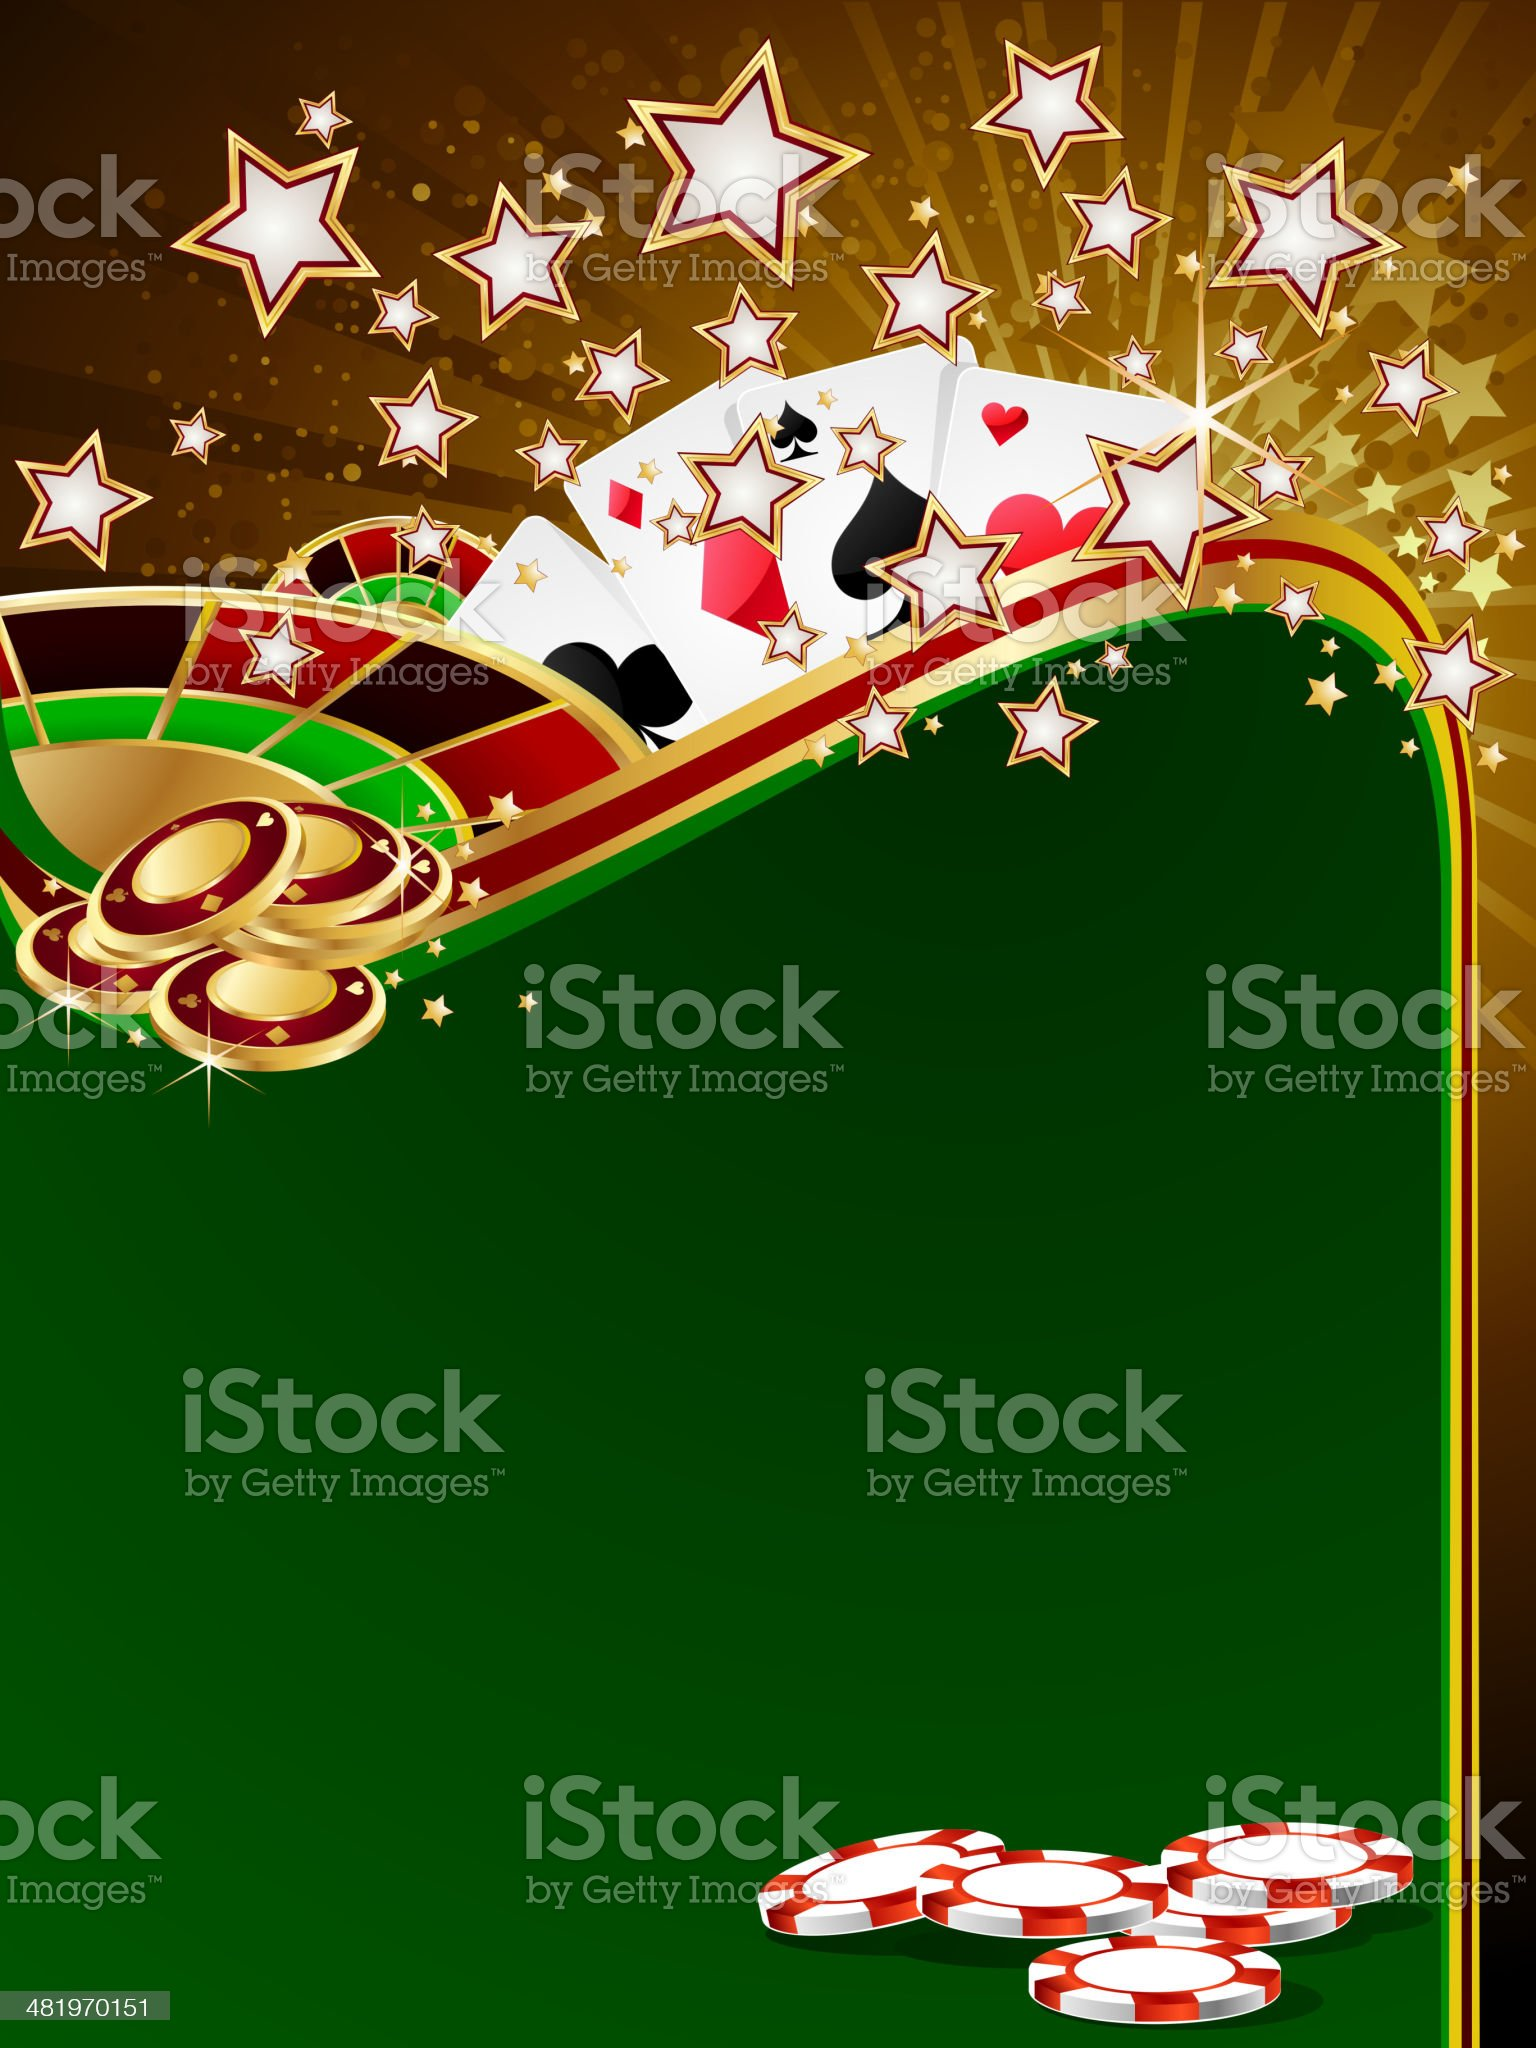 Casino Games Background royalty-free stock vector art